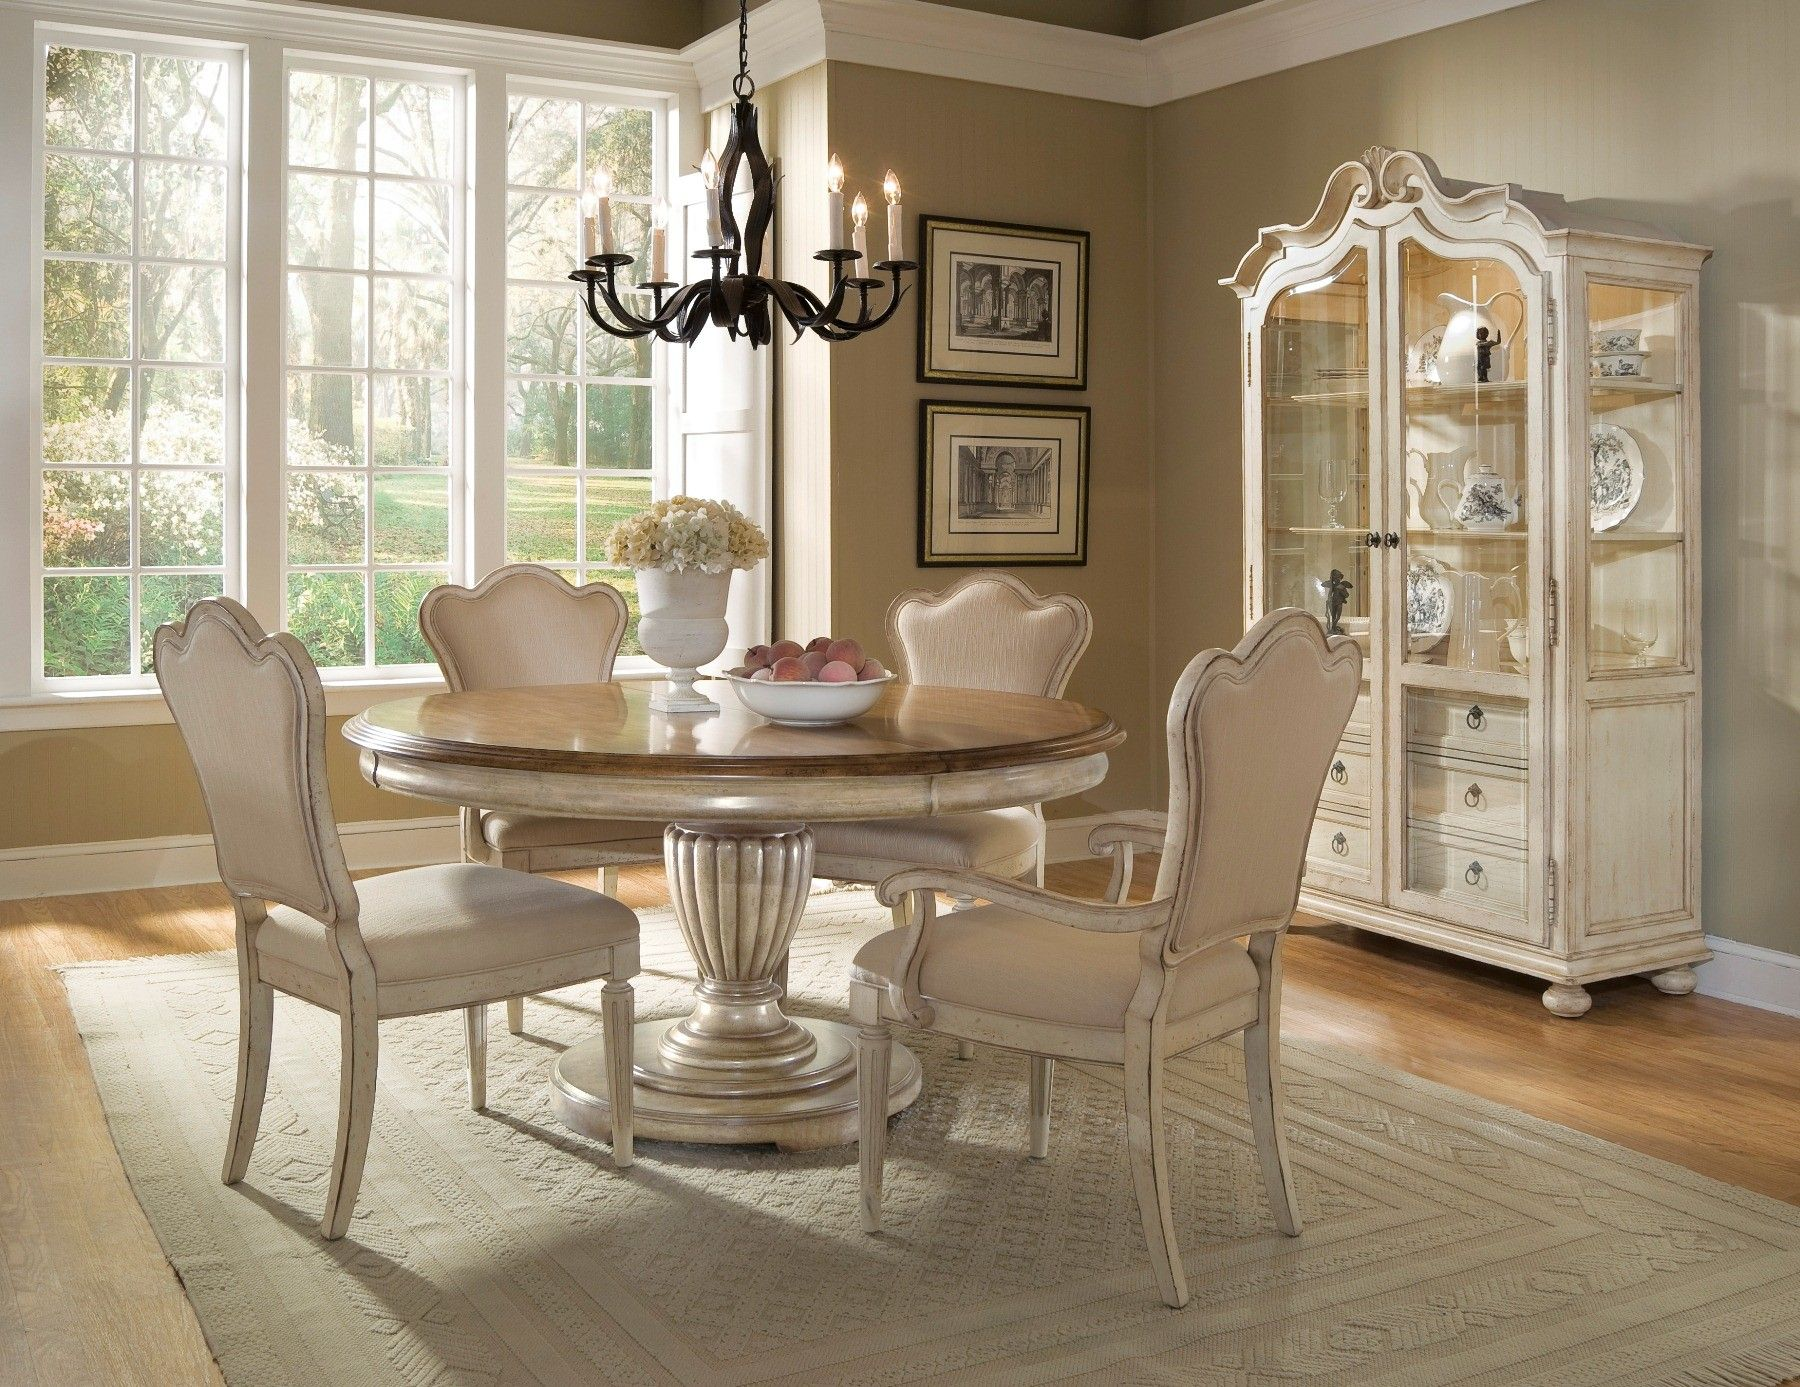 Black and white dining room sets - White Dining Room Furniture